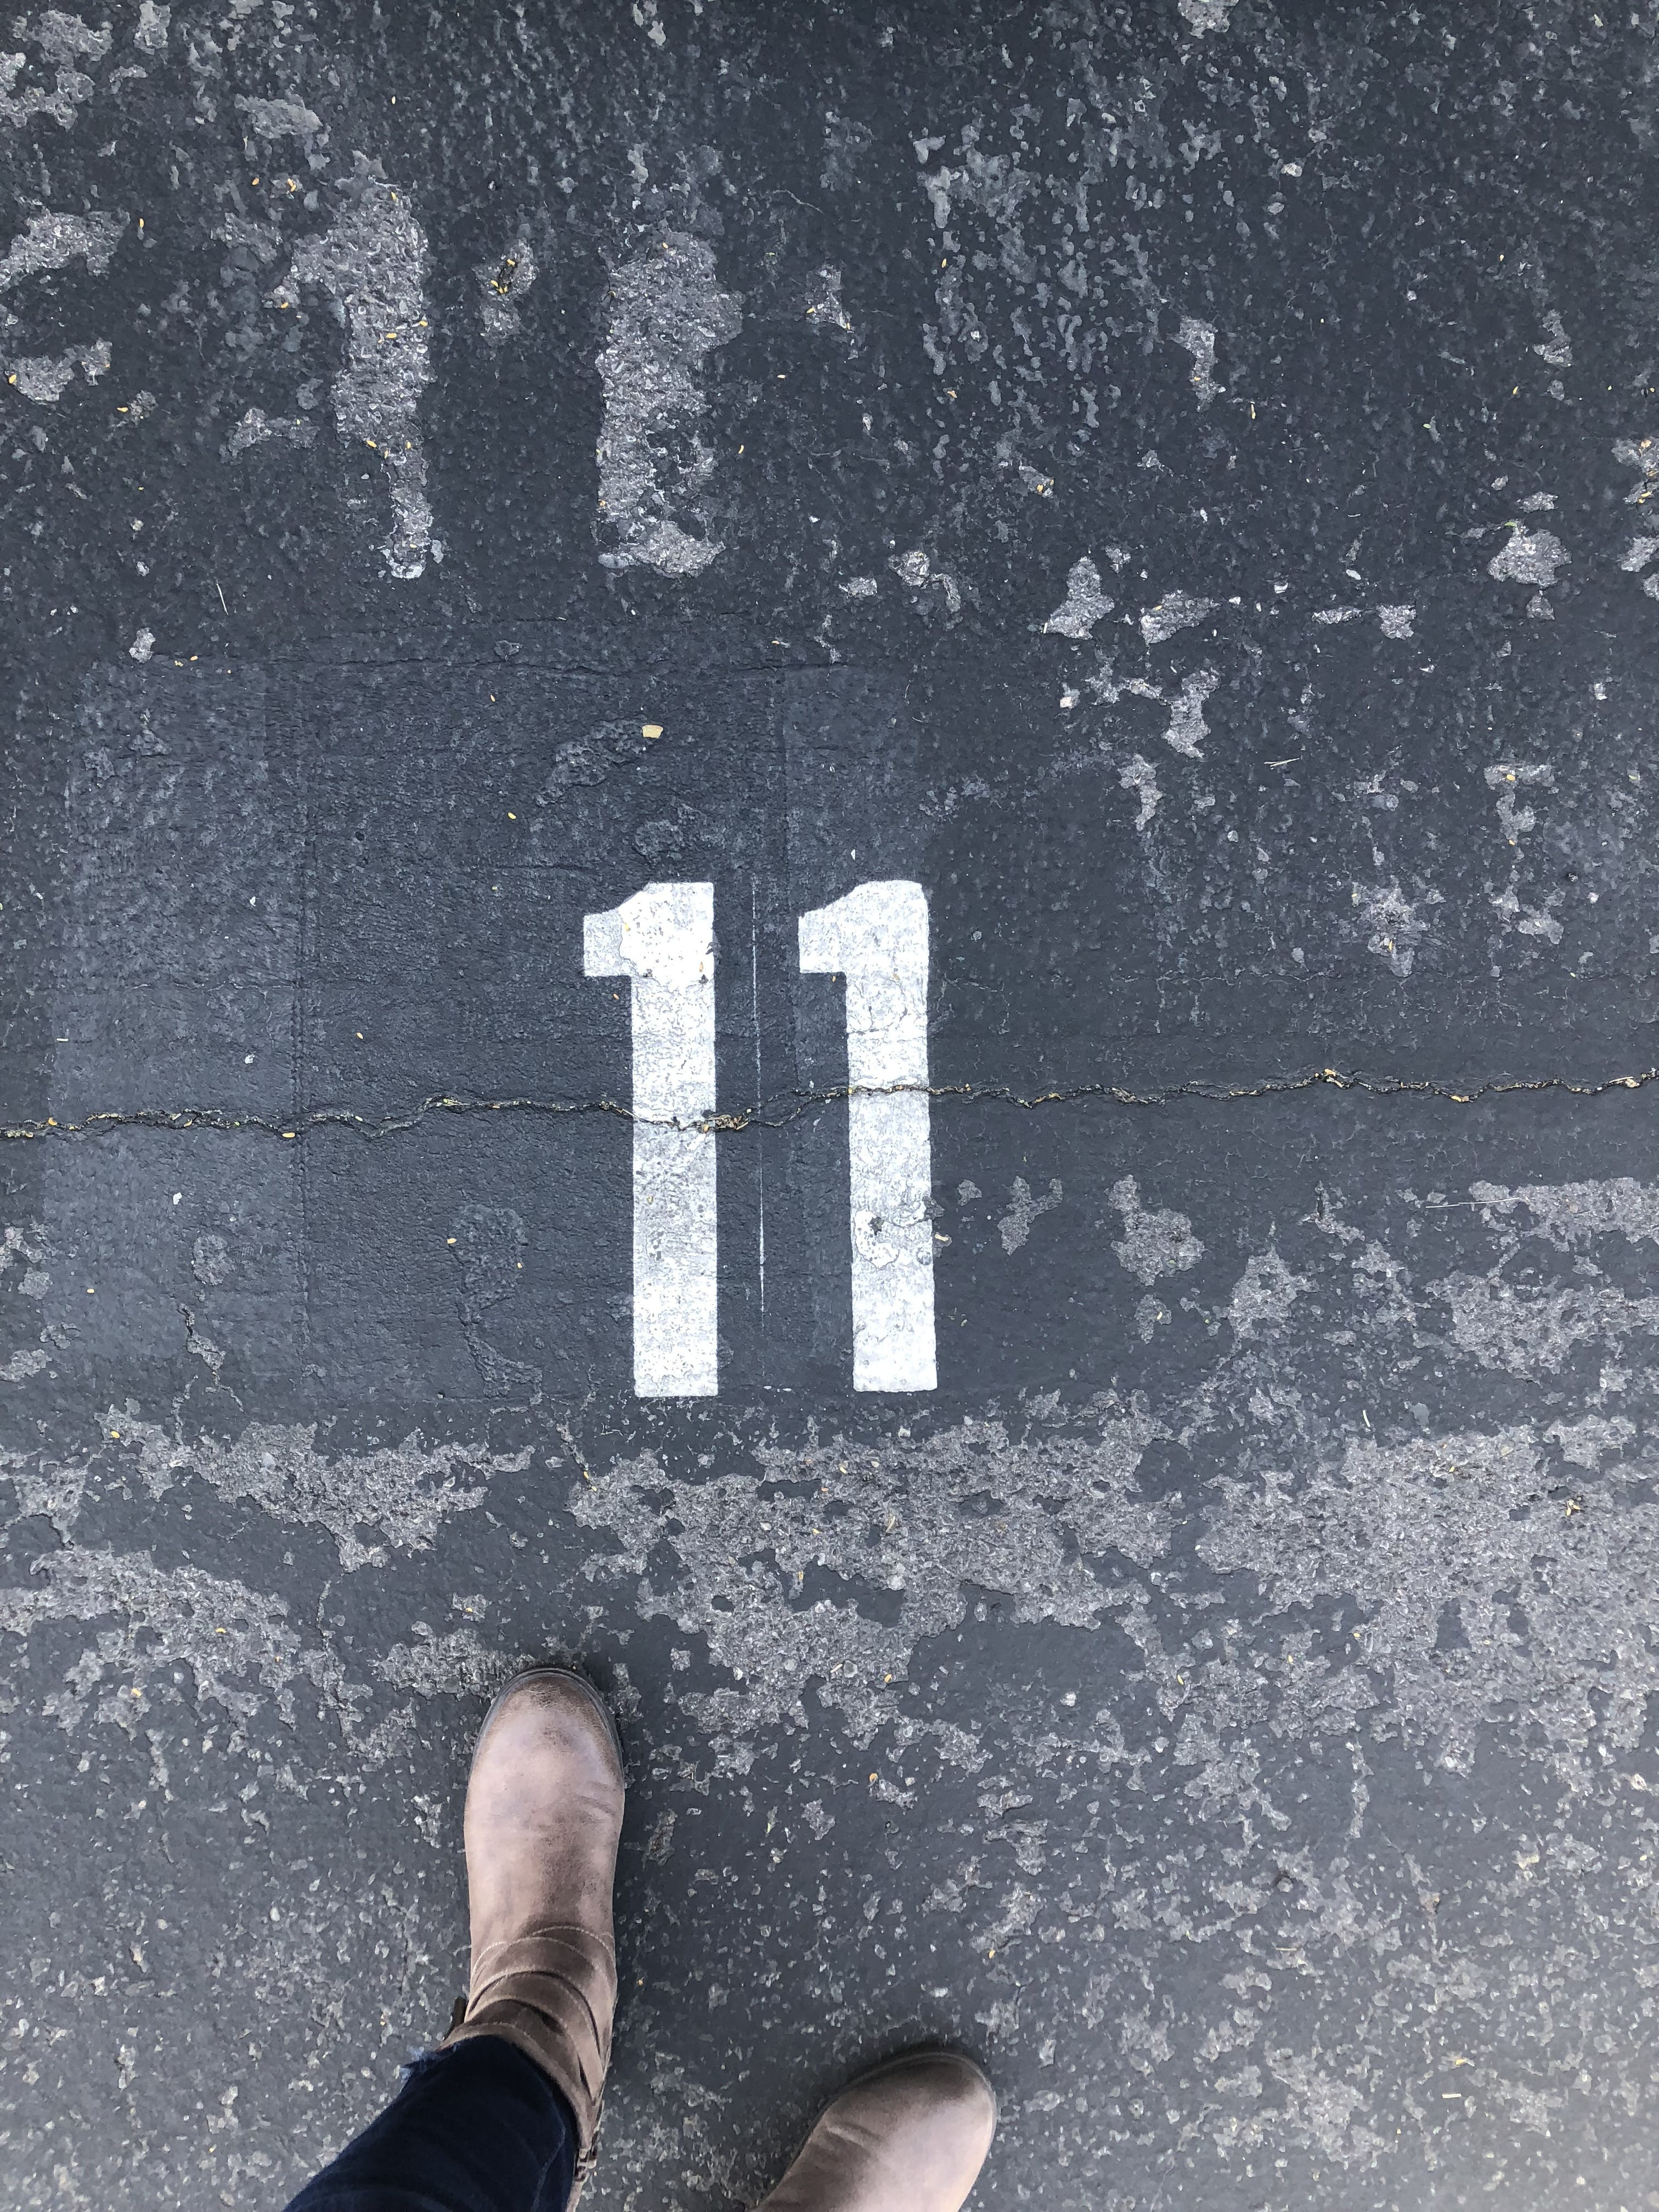 Person Standing On Concrete Floor With Number 11 Paint